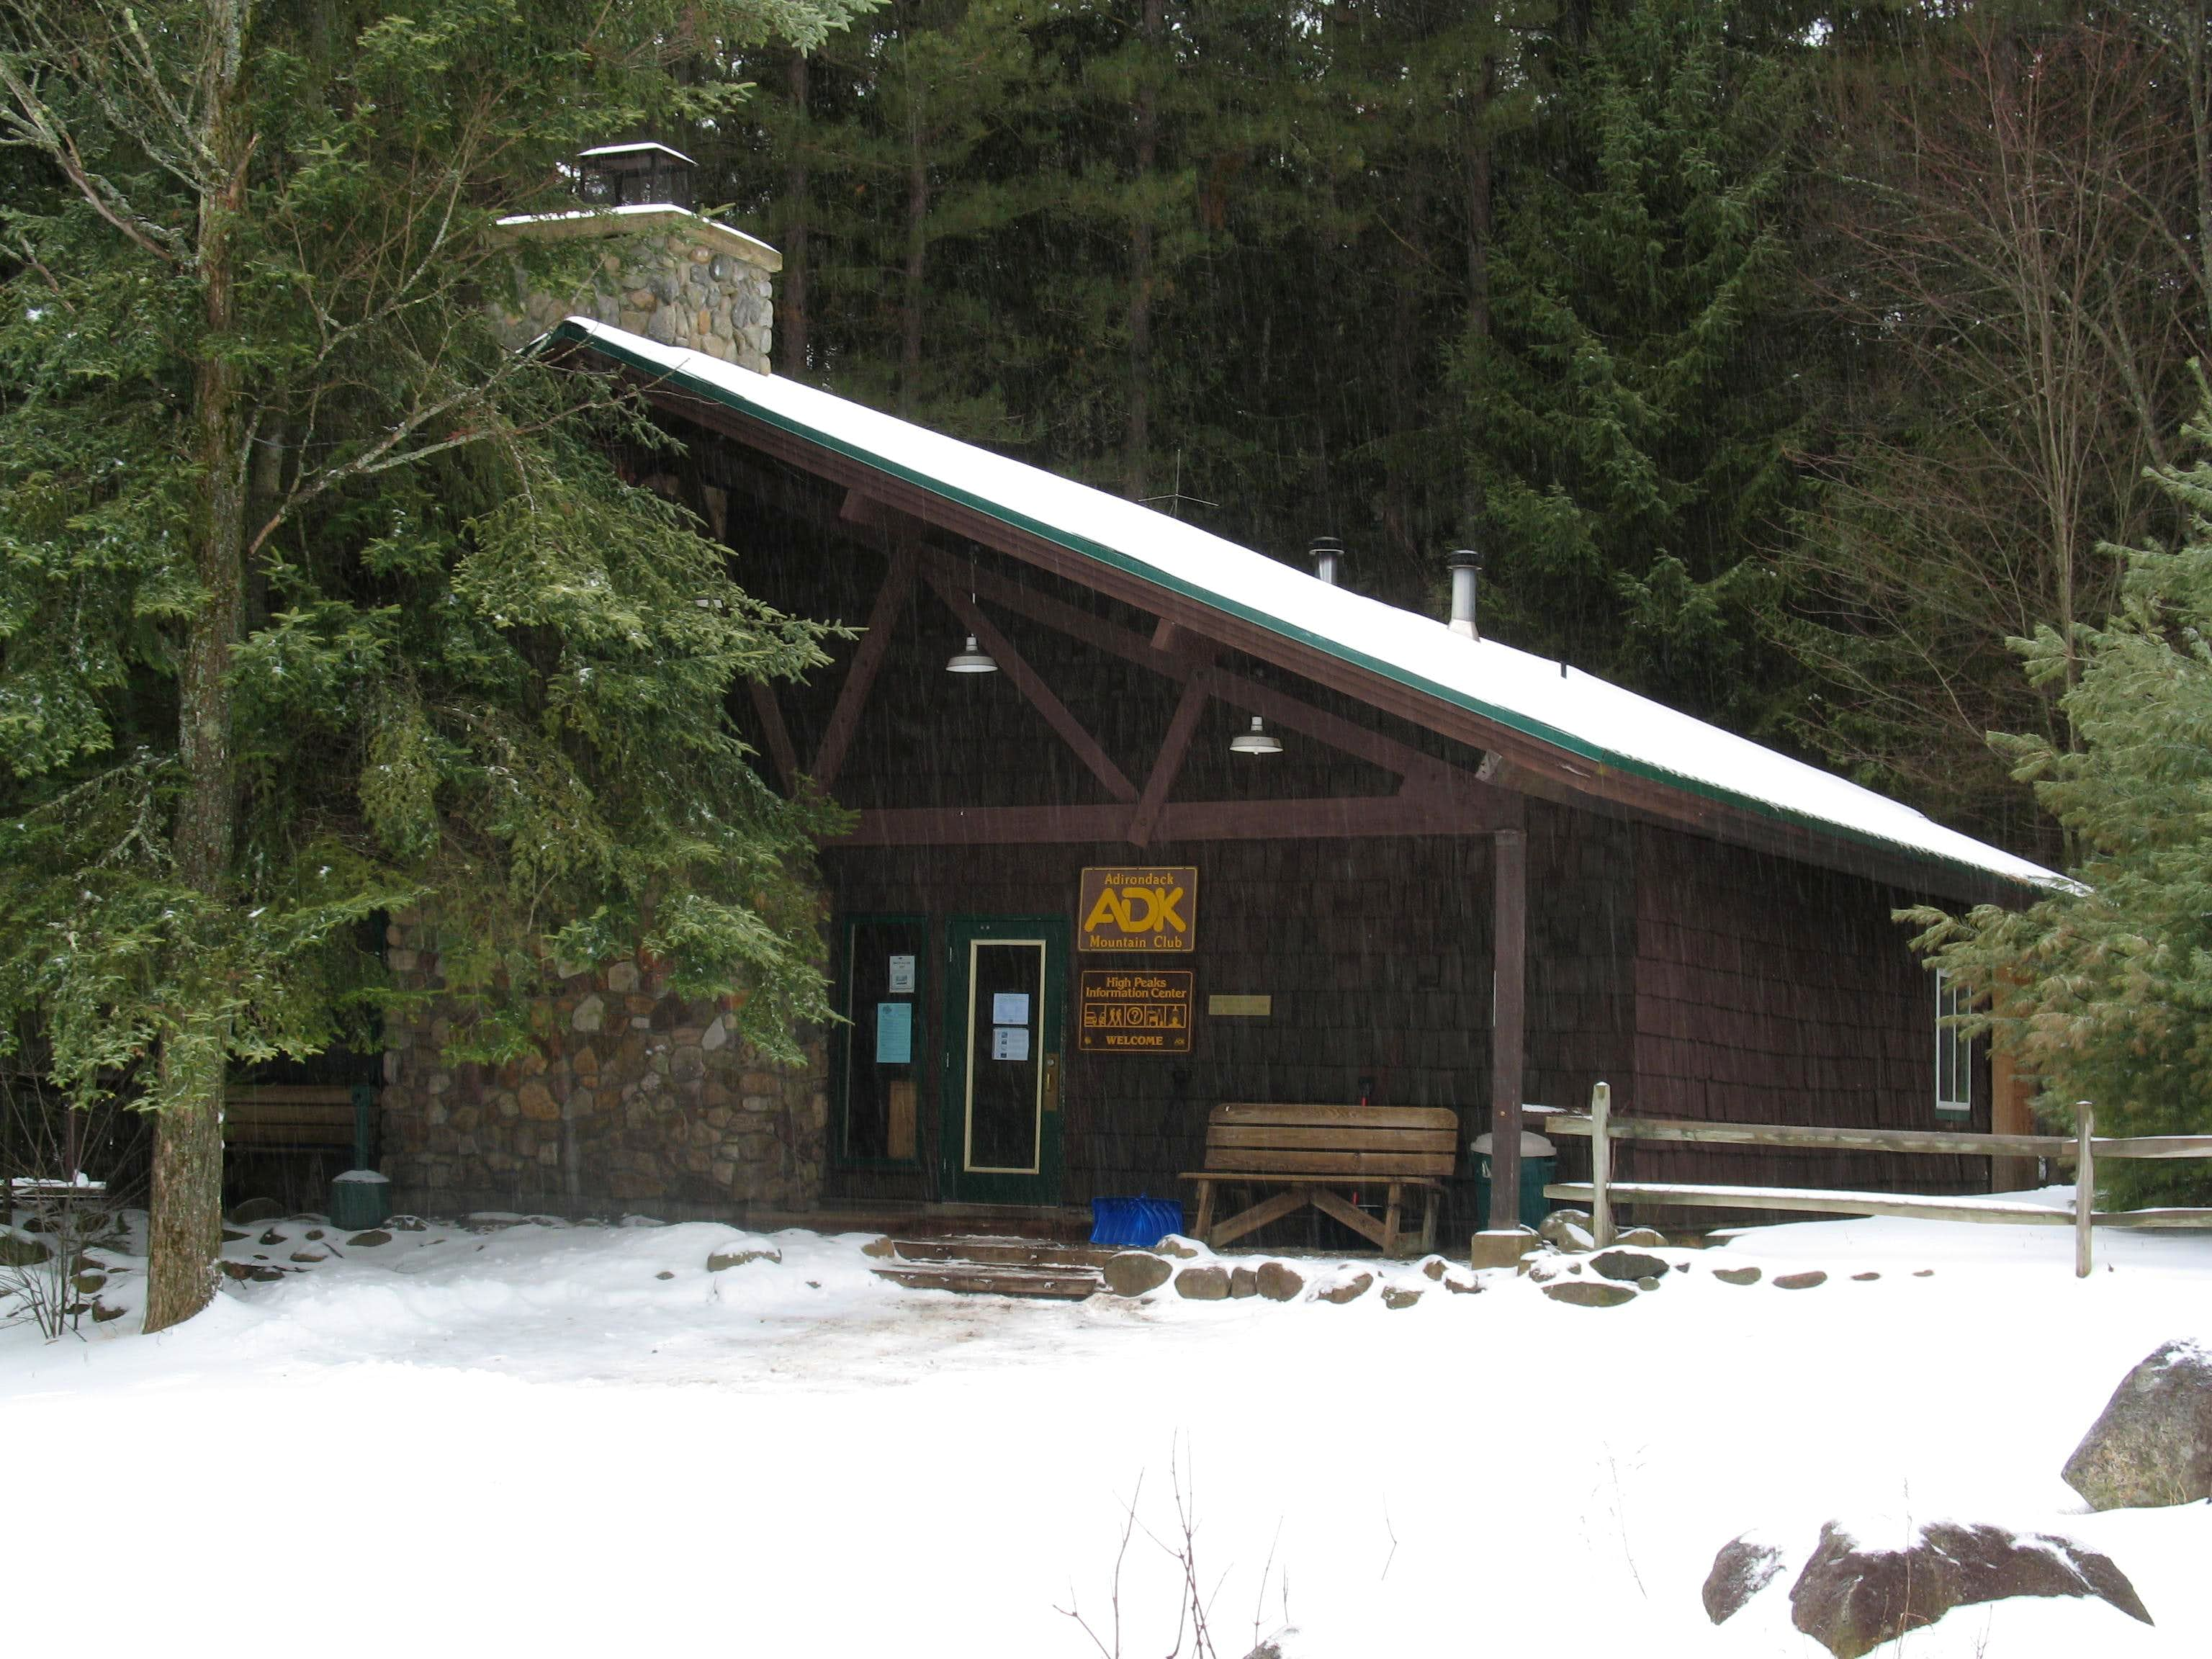 ADK LOJ, High Peaks Info Center & Van Hoevenberg Trail Parking